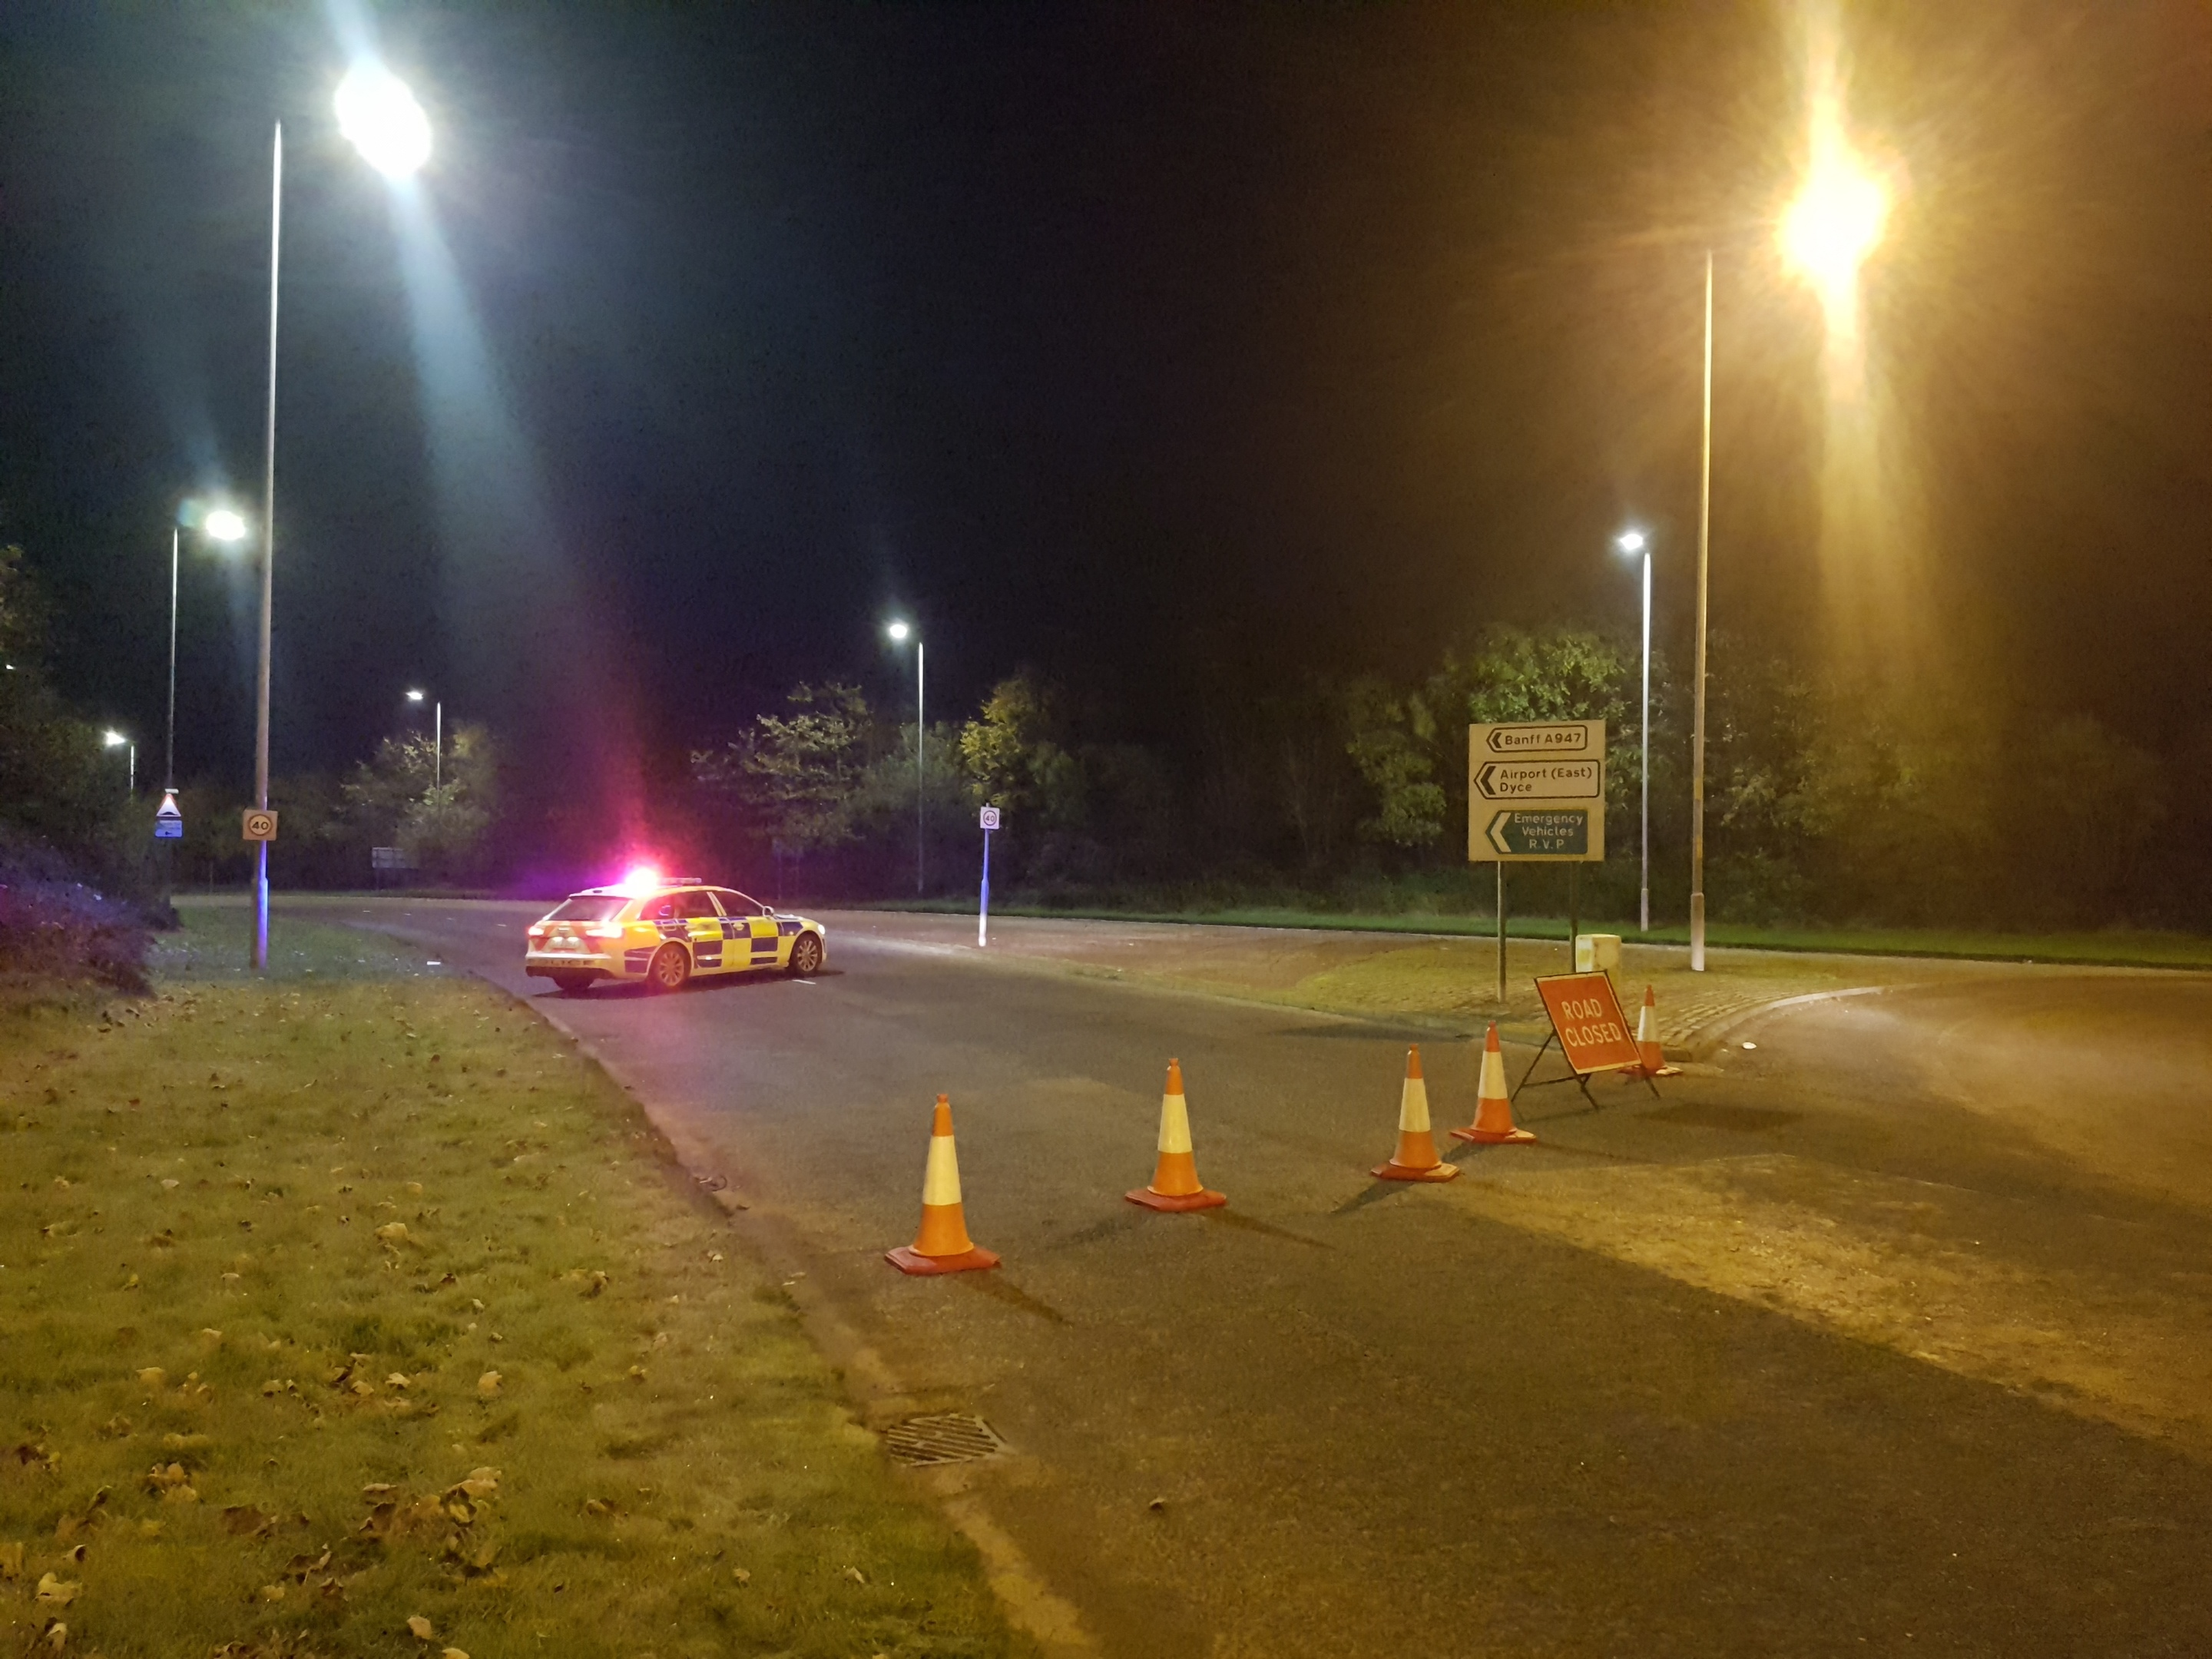 The incident happened at around 12.30am on the A947 between the Stoneywood roundabout and Mugiemoss Road